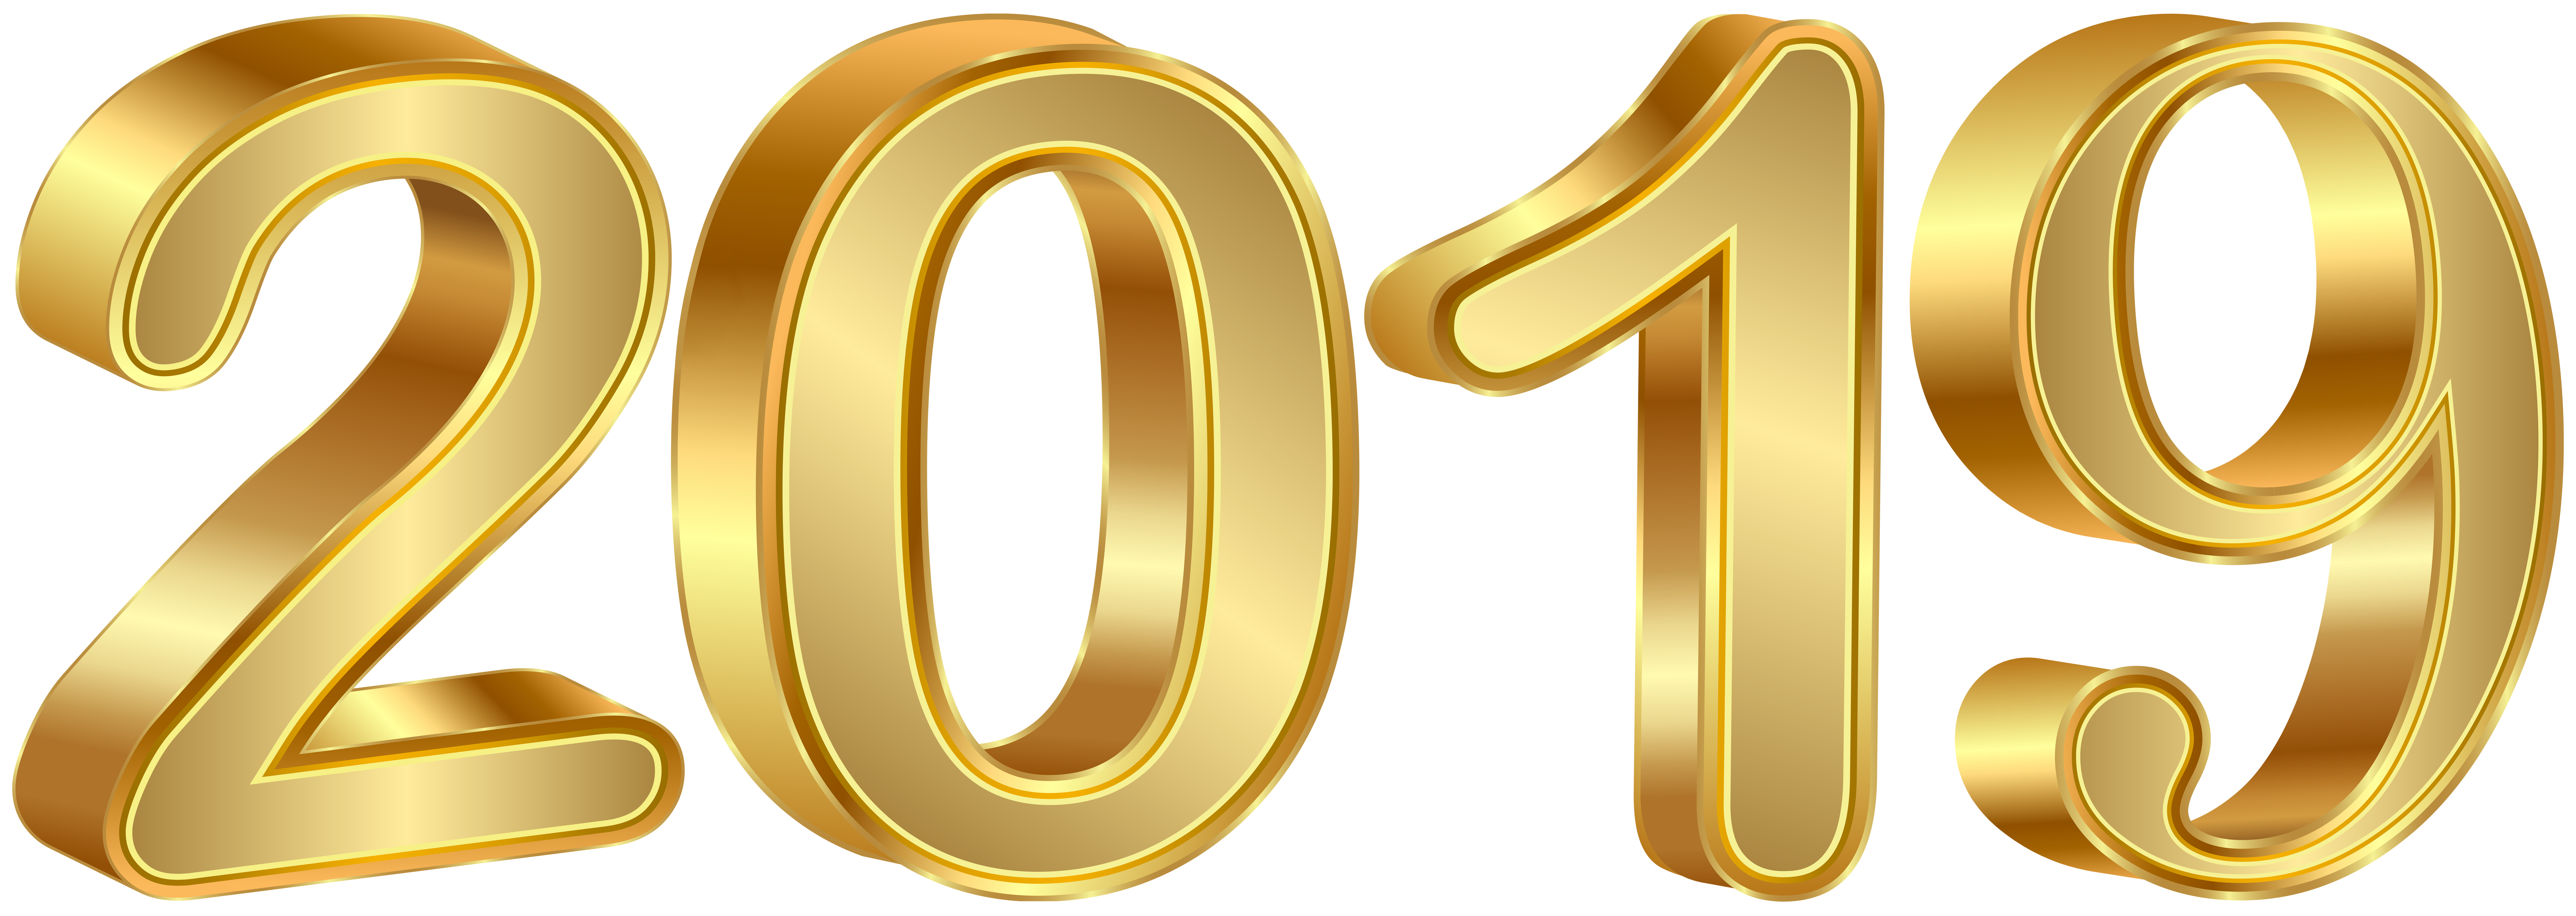 2019 Gold PNG Clipart Image.